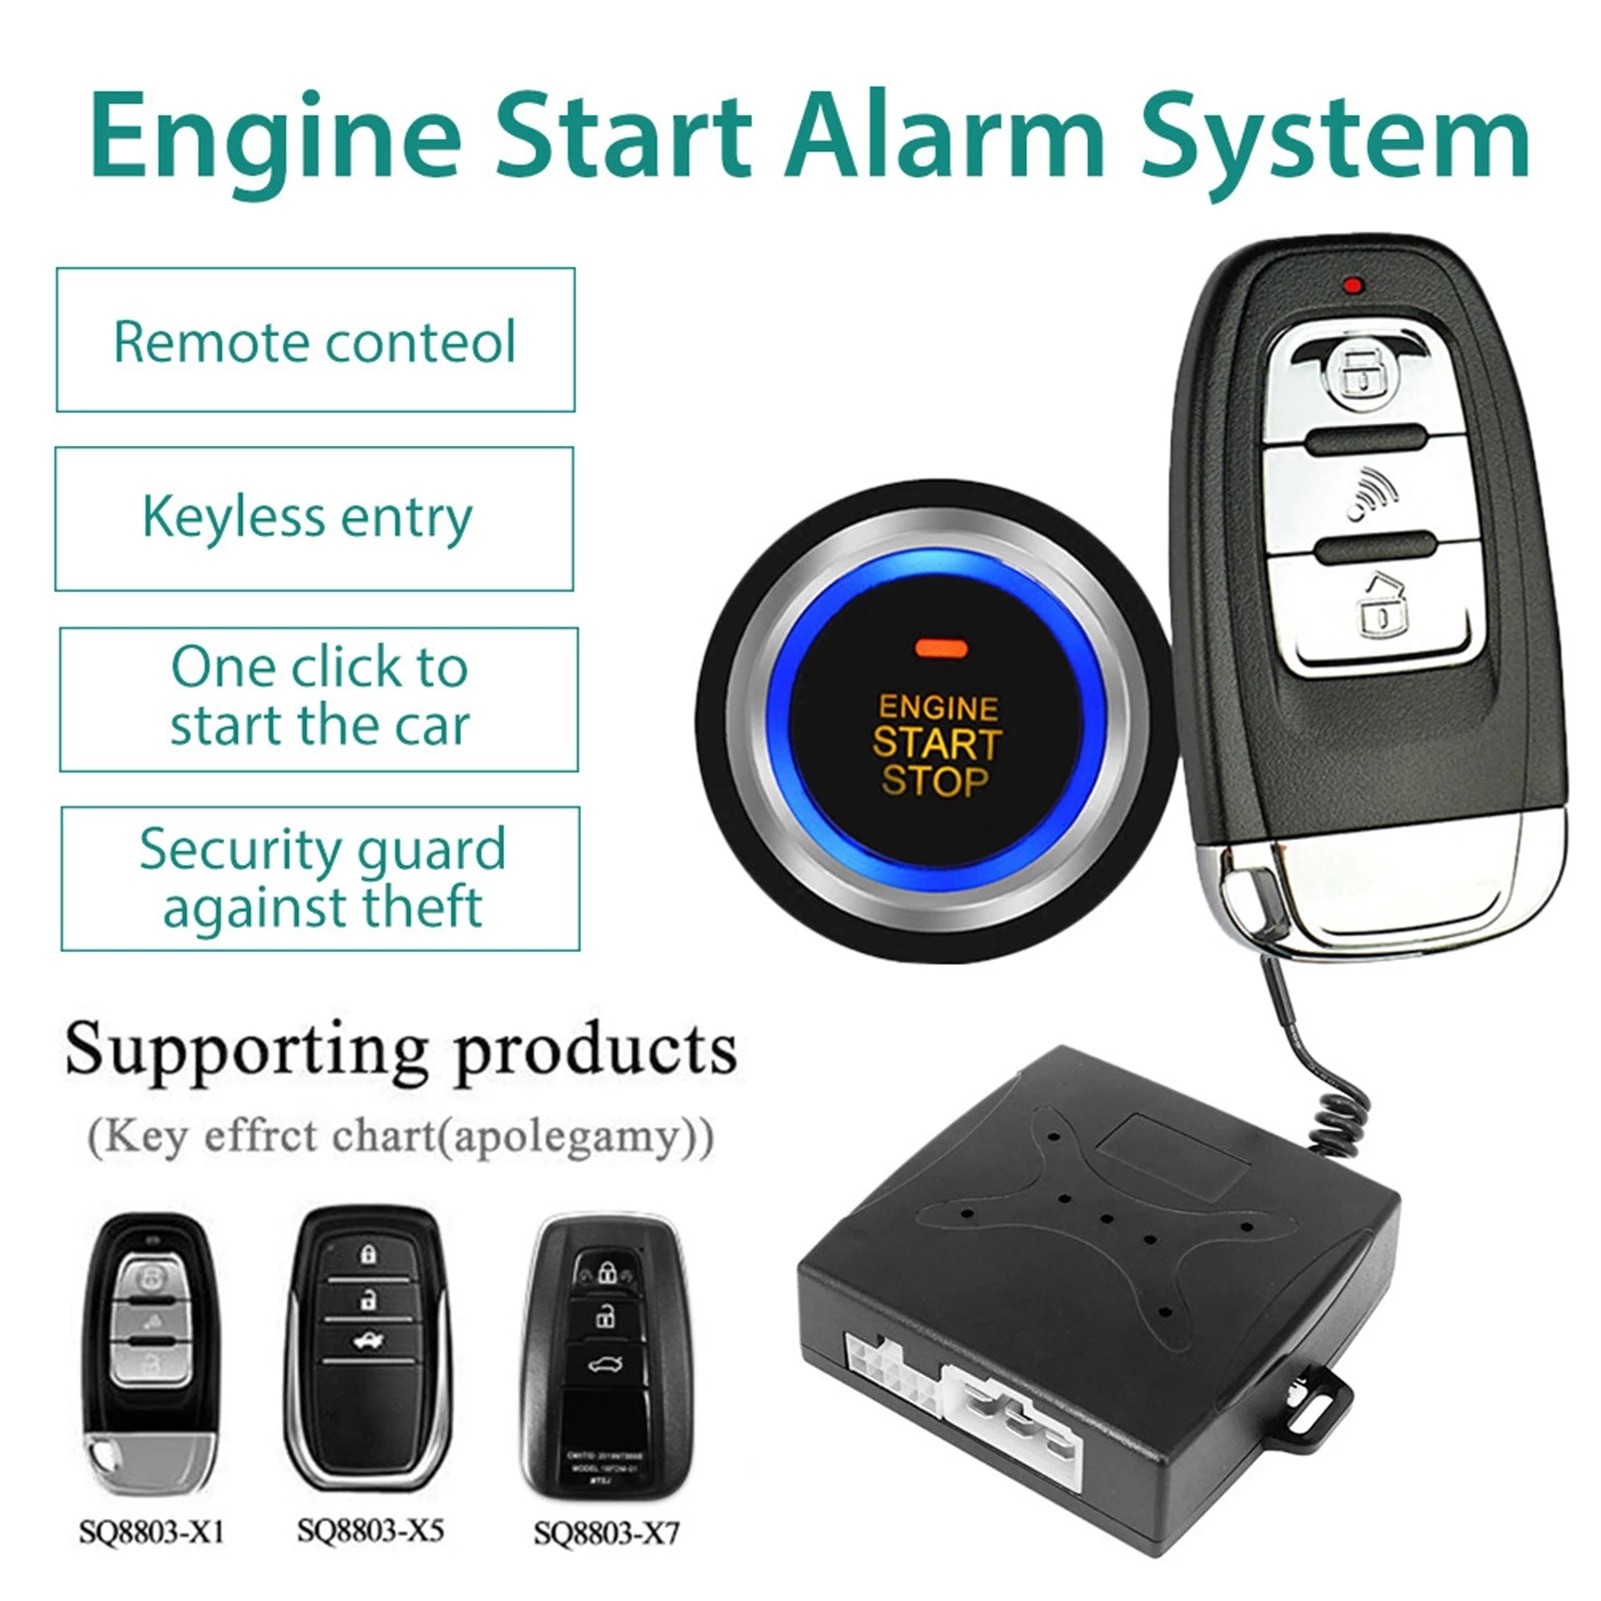 Smart One-button Start Car Alarm System Push Engine Start Stop Button Lock Ignition Immobilizer With Remote Keyless Alarm System